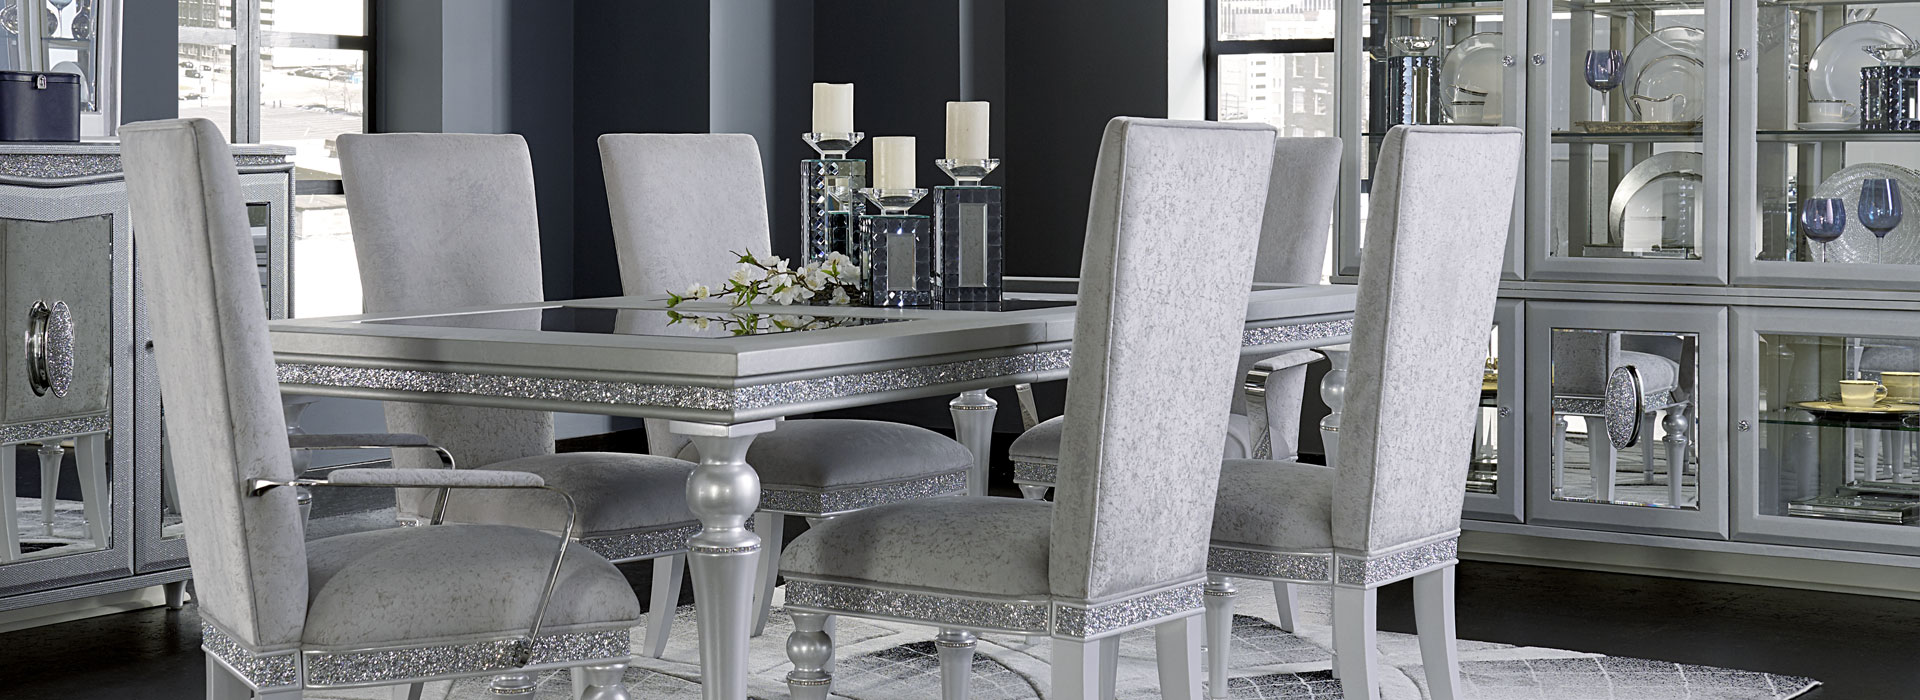 Amazing Melrose Plaza By Michael Amini And Jane Seymour, A Design Collaboration Is  The Essence Of Glamour And Timeless Elegance. Stunning Crystal Vinyl  Accents And ...